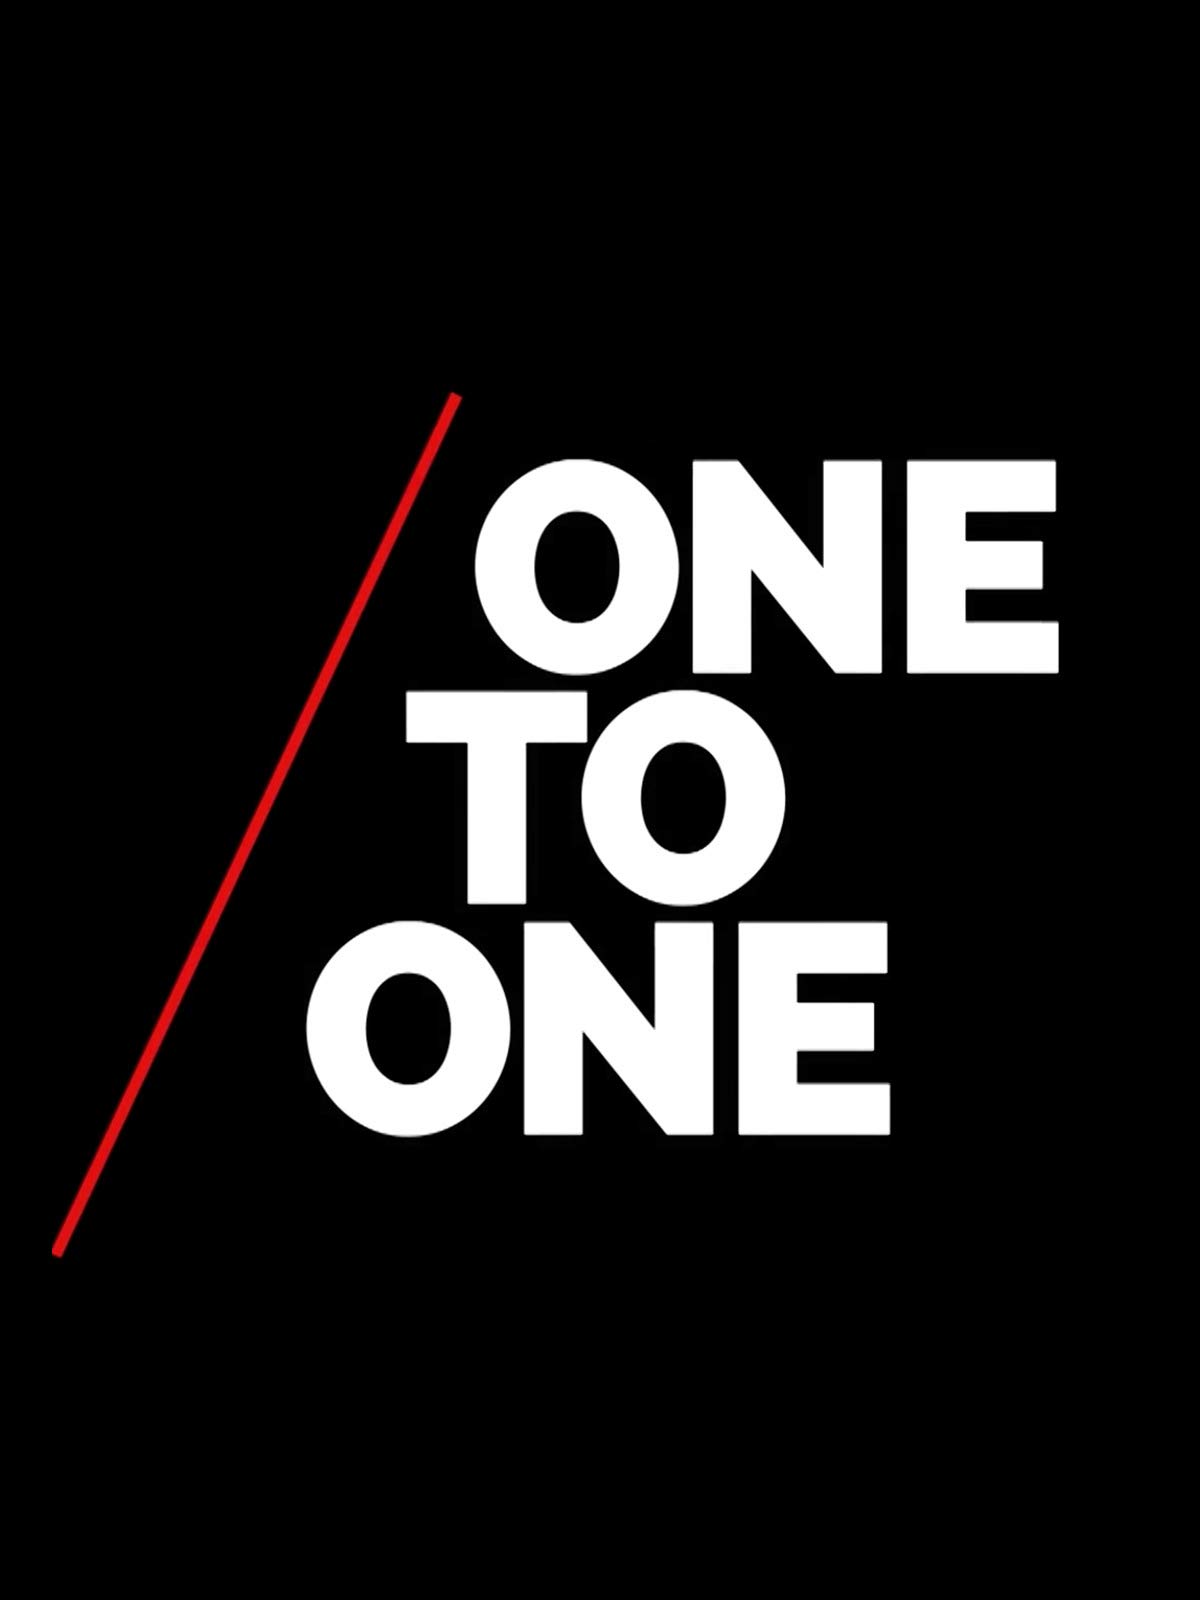 One to One - Colin Lynch on Amazon Prime Video UK